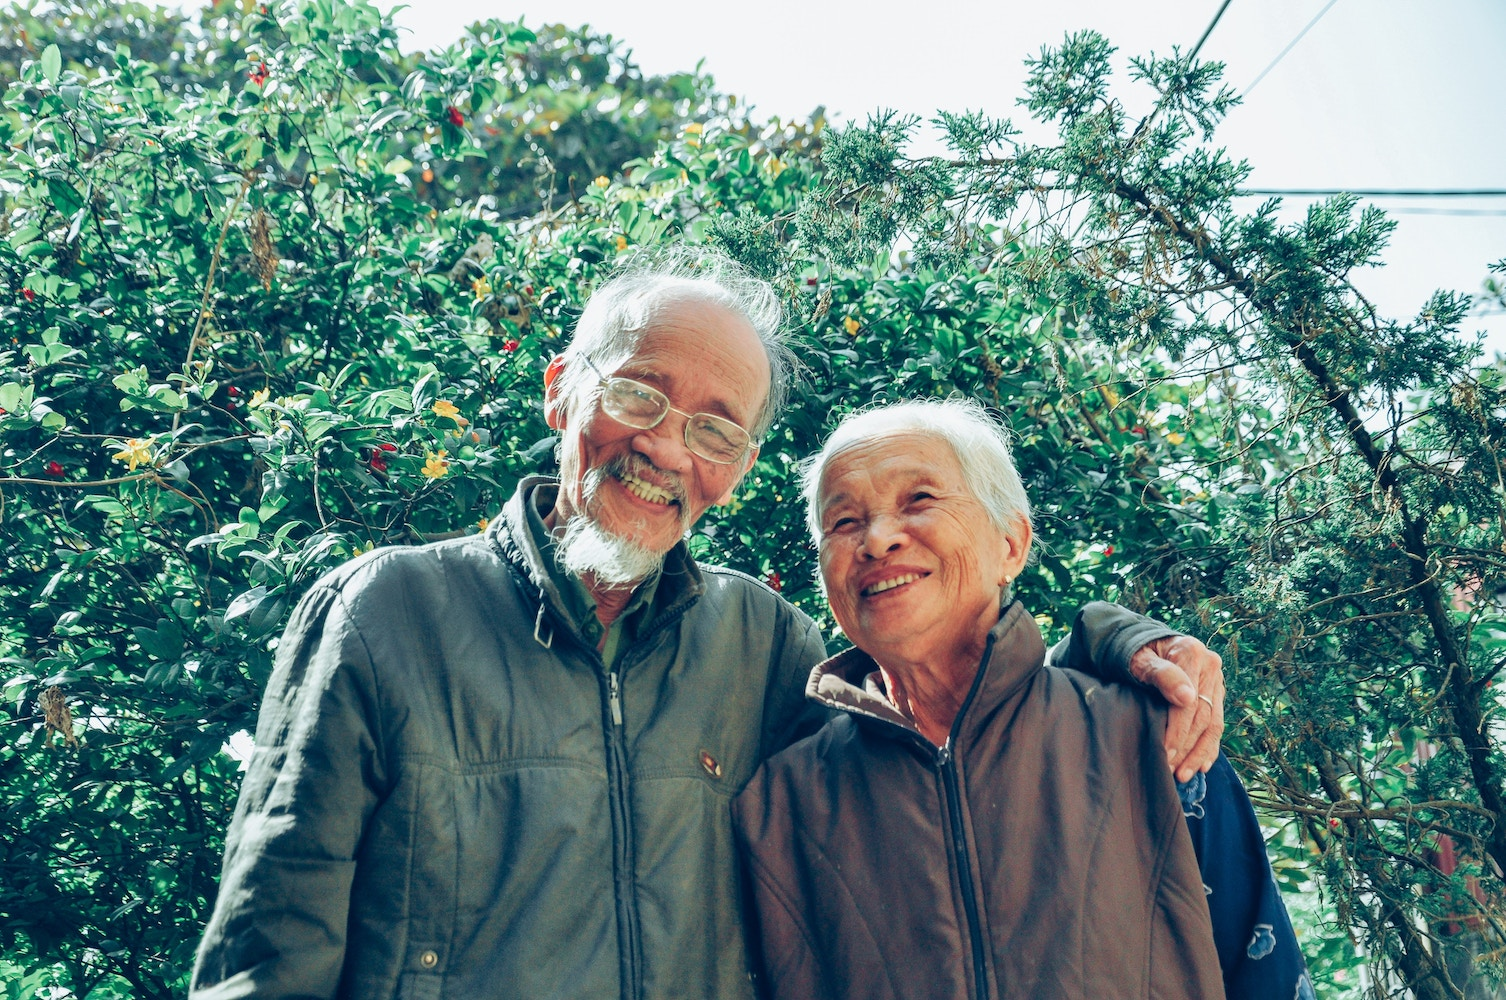 The Top 10 Social Activities For Seniors